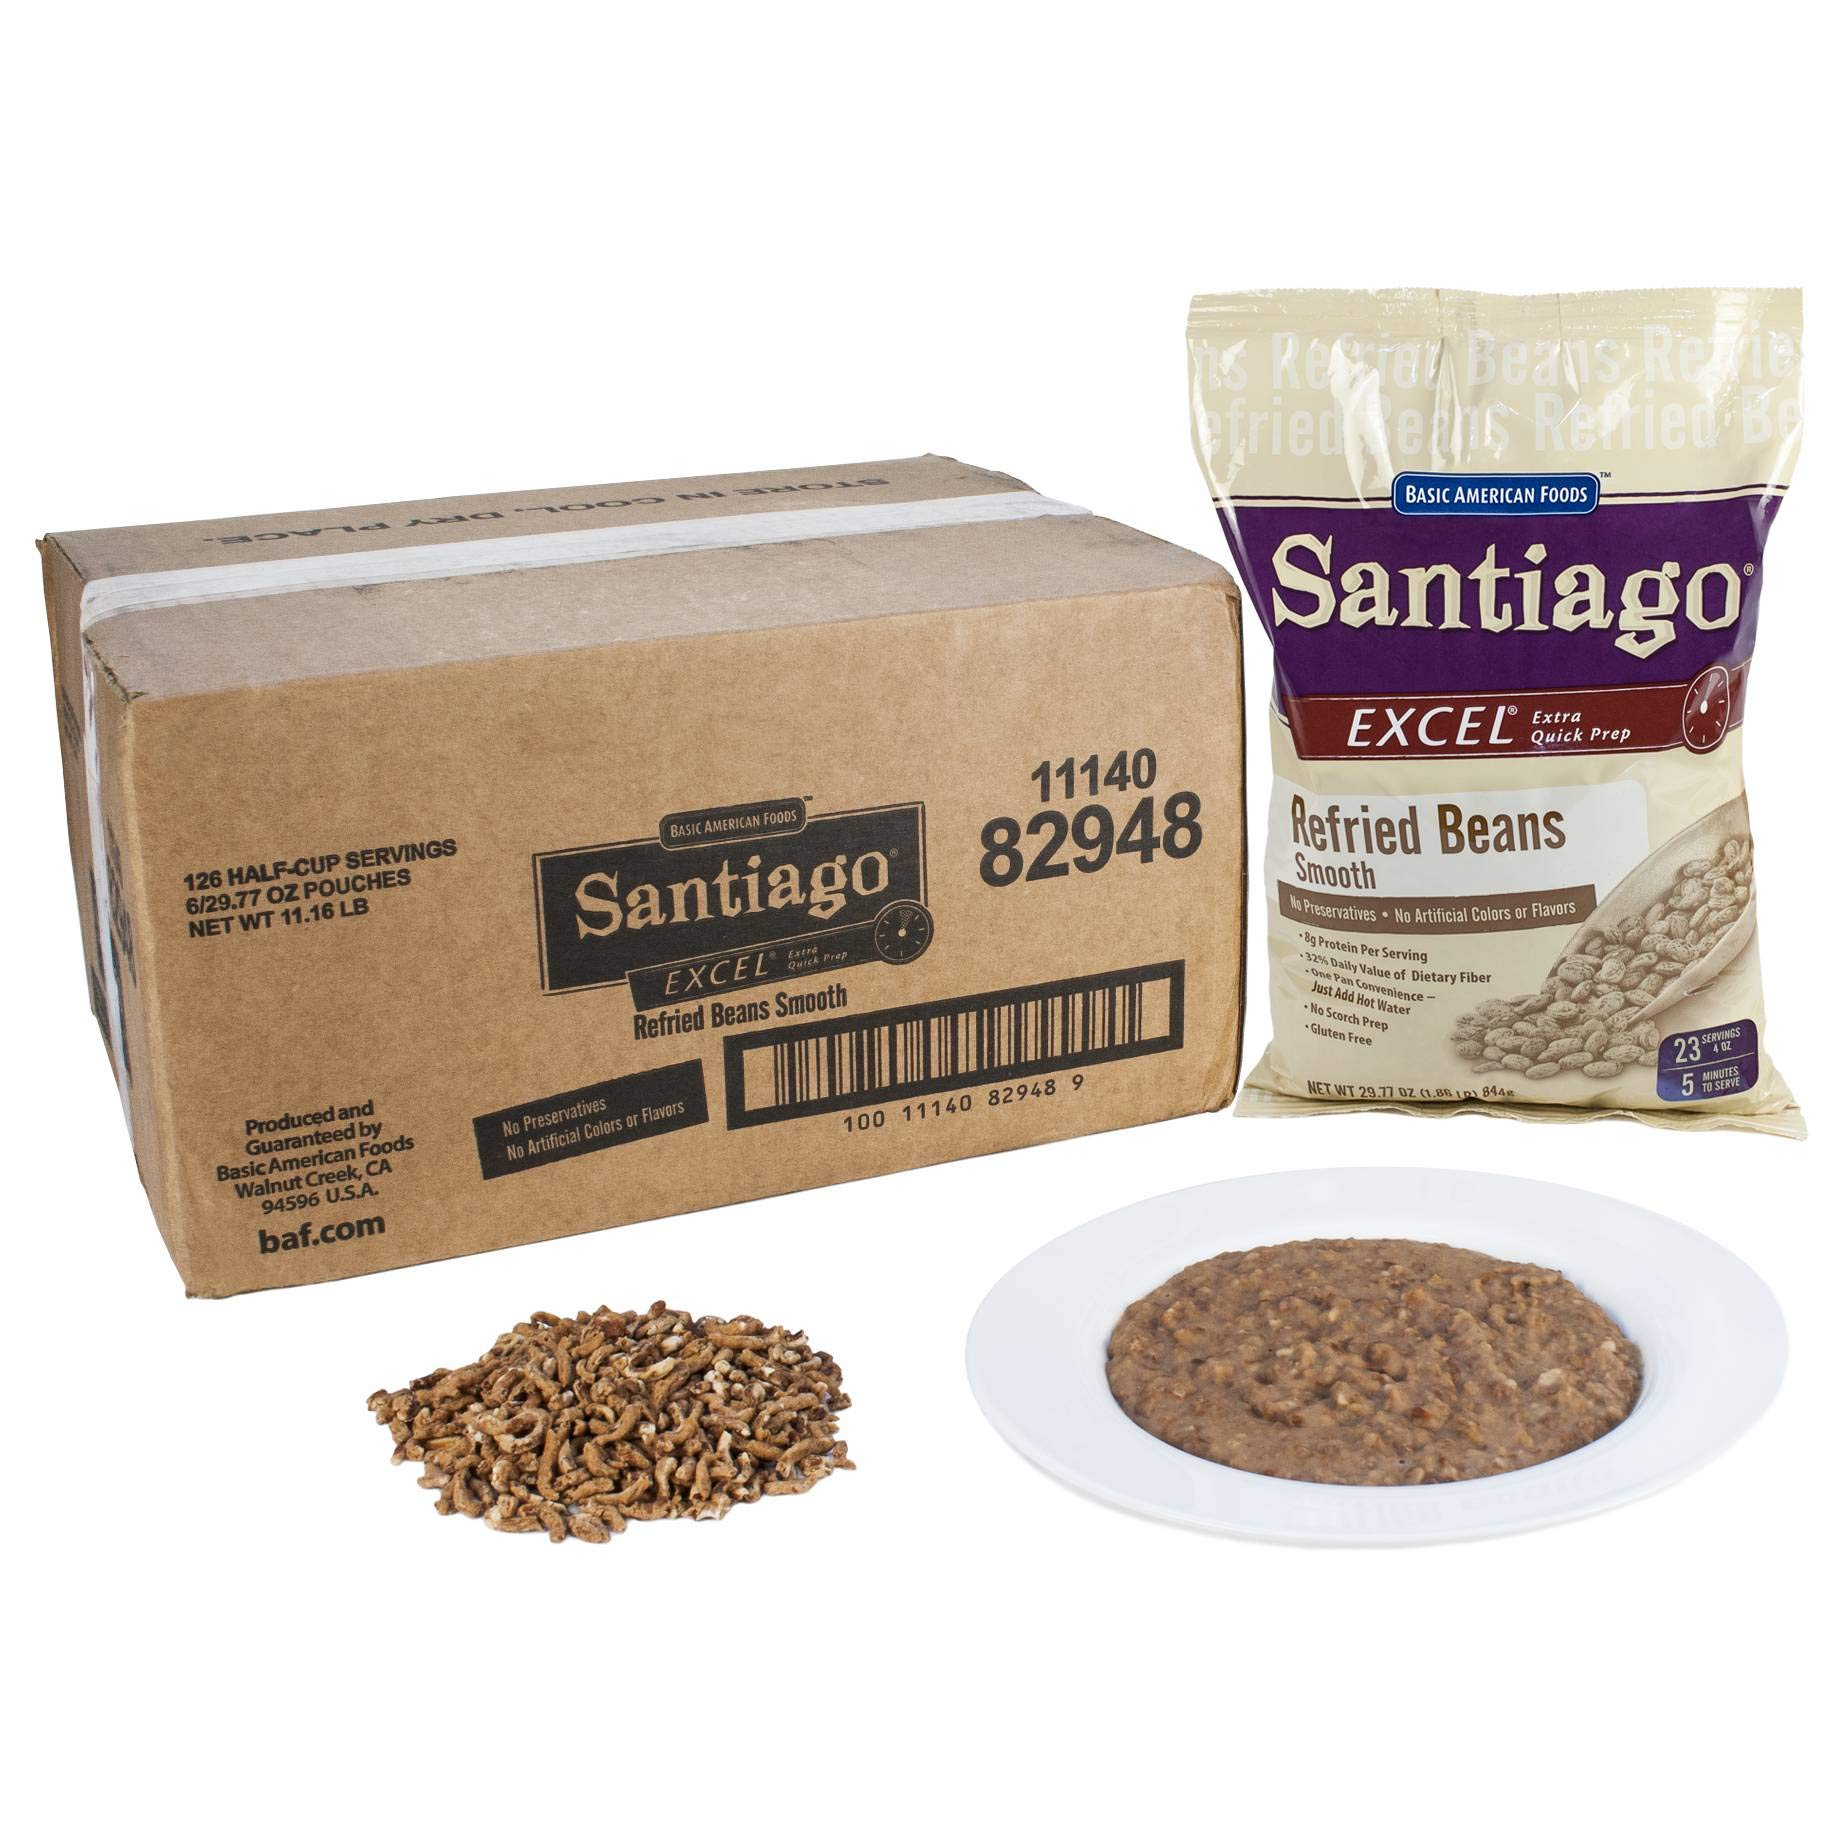 Santiago Smooth Refried Beans - 29.77 oz. pouch, 6 pouches per case by Basic American Foods